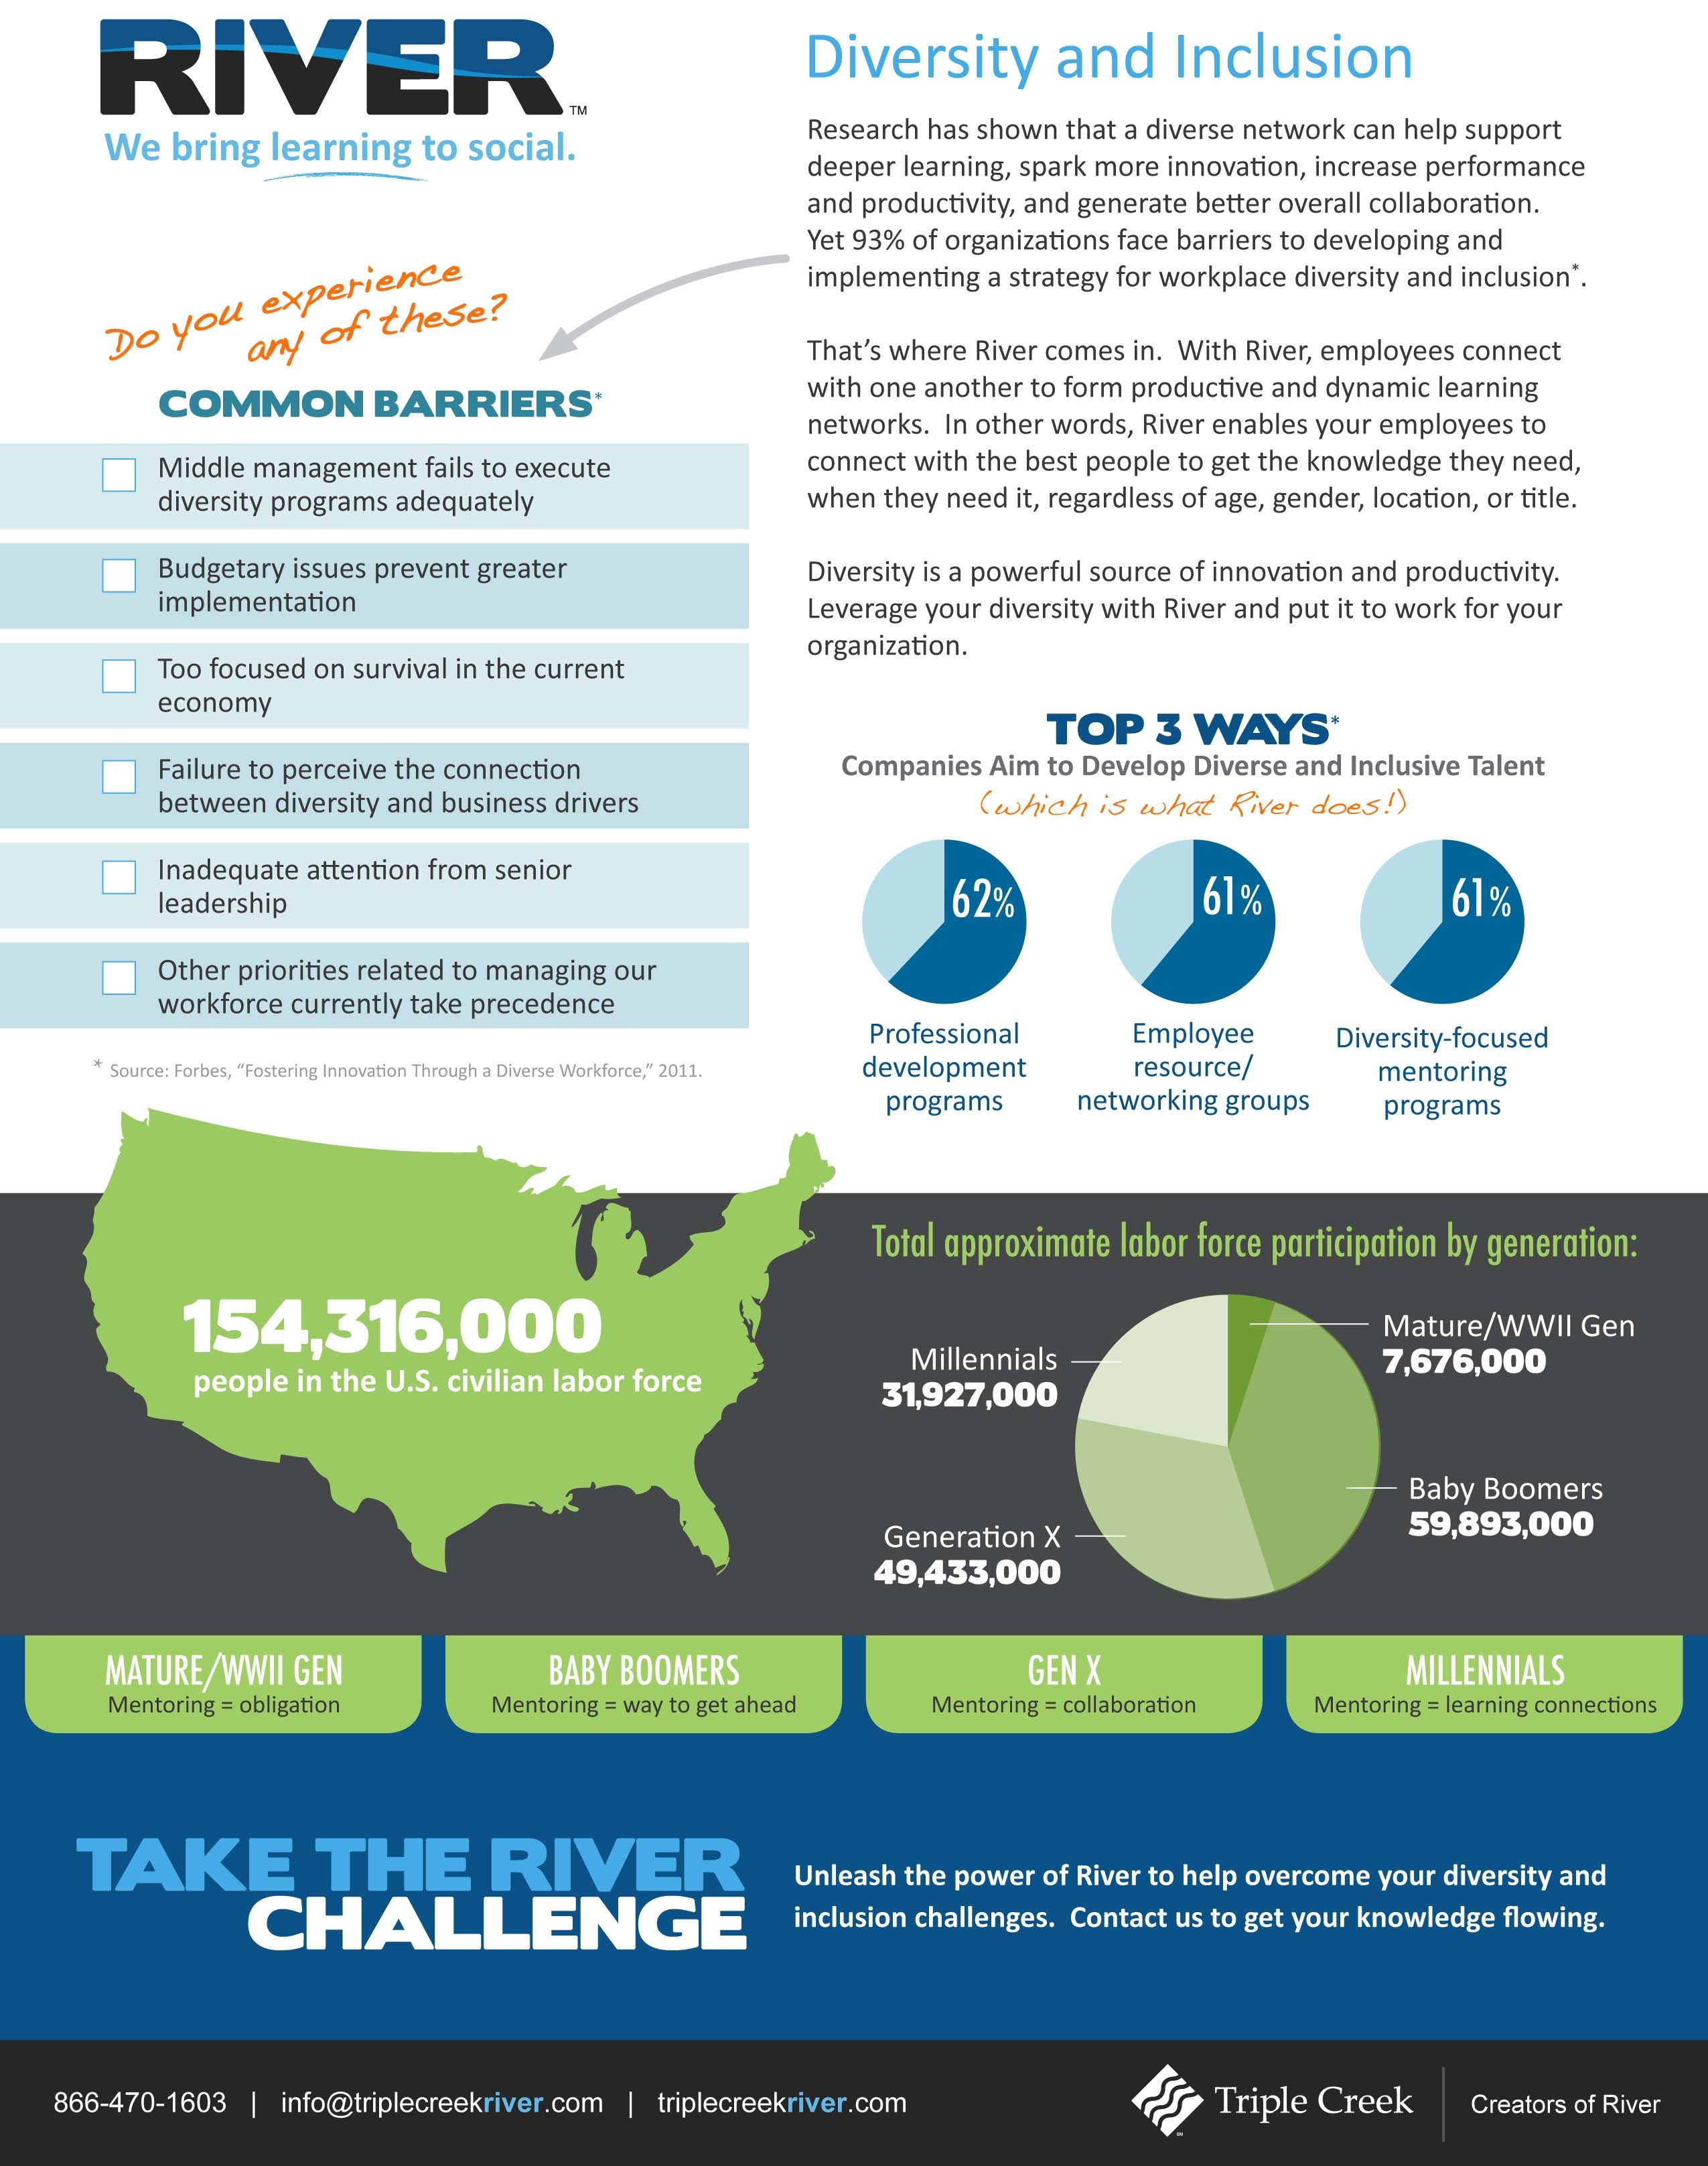 Diversity and Inclusion Infographic Learn more about